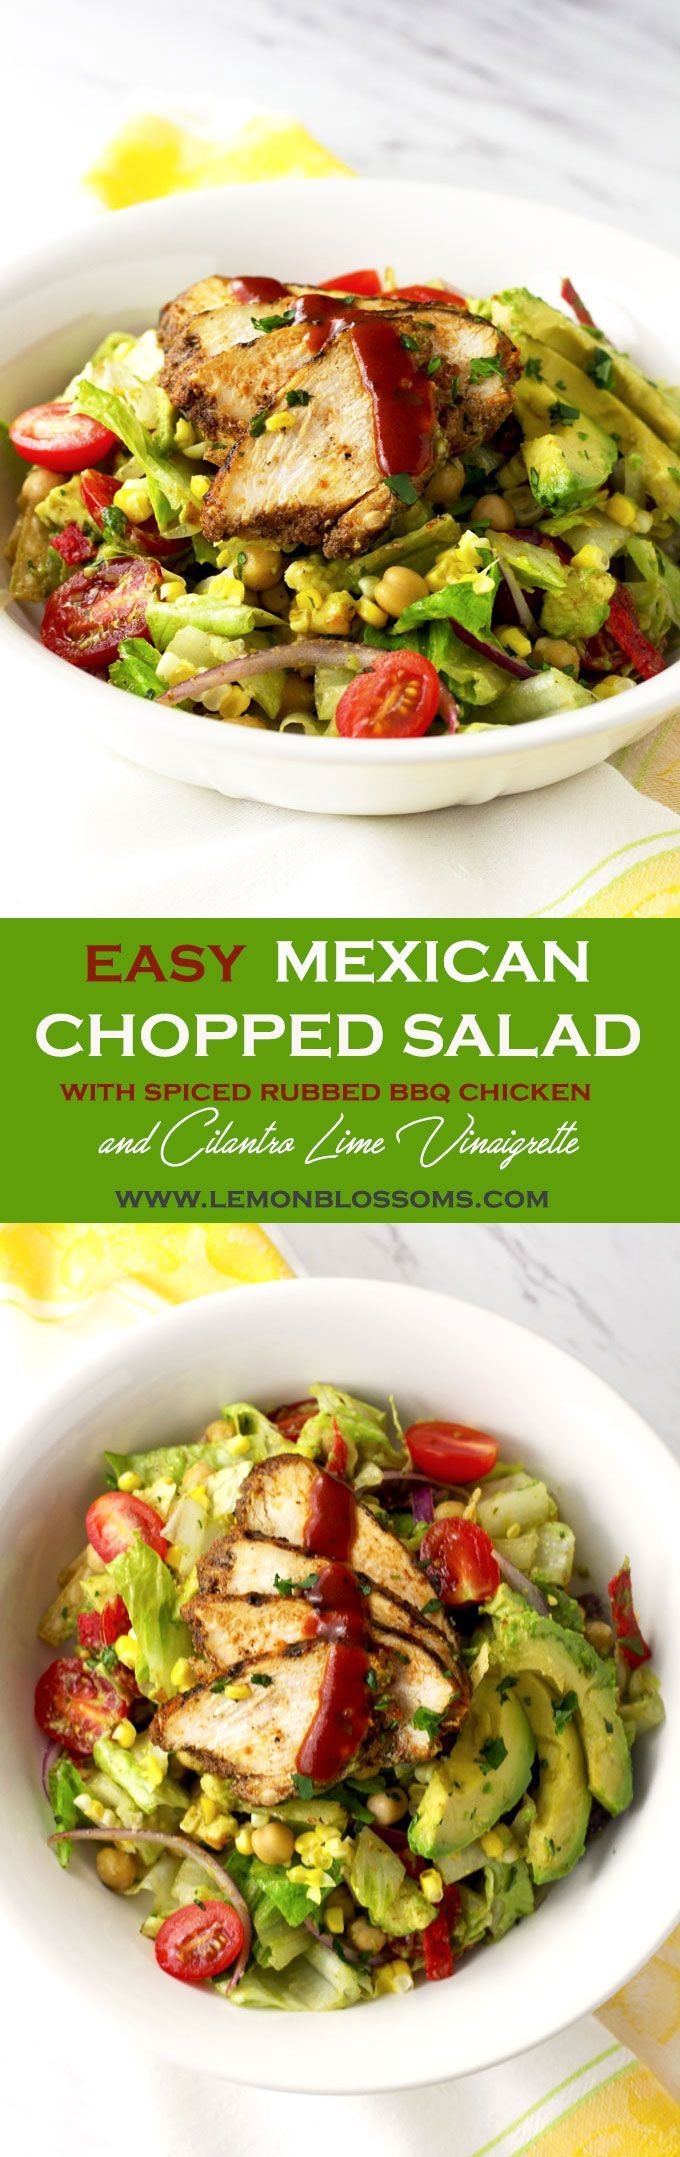 This Easy Mexican Chopped Salad is pure perfection! Avocado, Corn, Tomatoes and Chickpeas are tossed with the easiest Cilantro Lime Vinaigrette and topped with bold and flavorful Spiced Rubbed BBQ Chicken and crunchy Tortilla Strips!